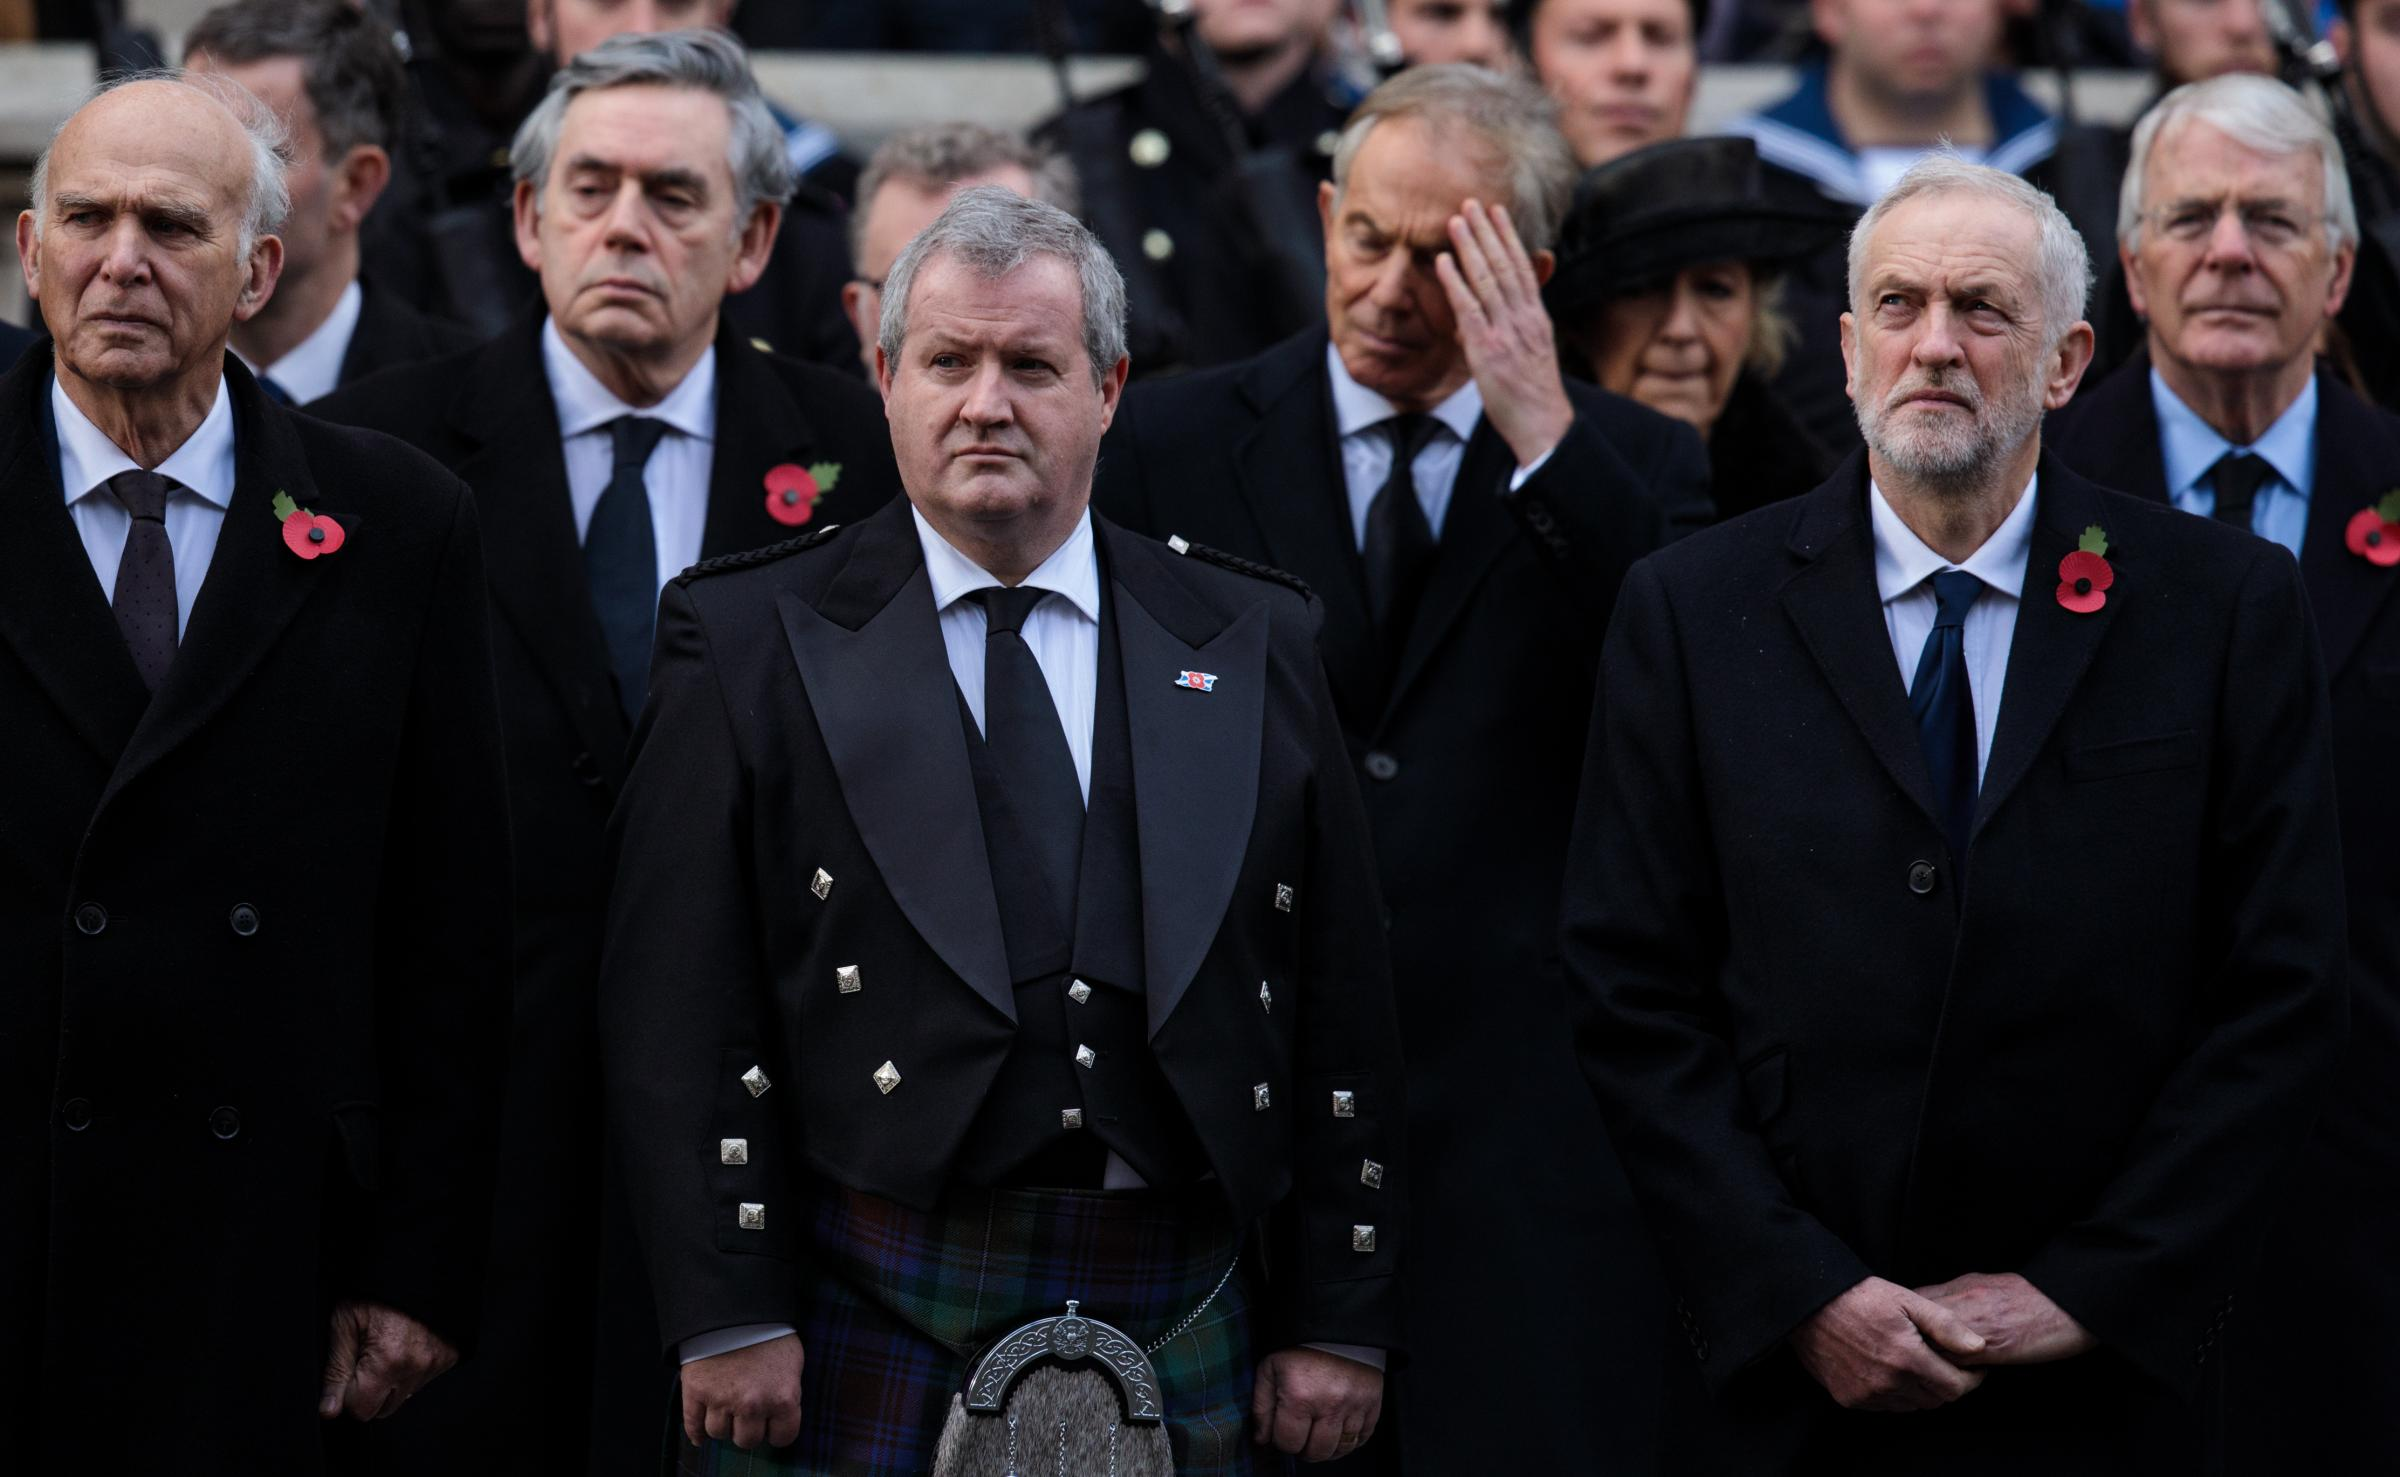 Ian Blackford joined Westminster party leaders past and present at the Cenotaph